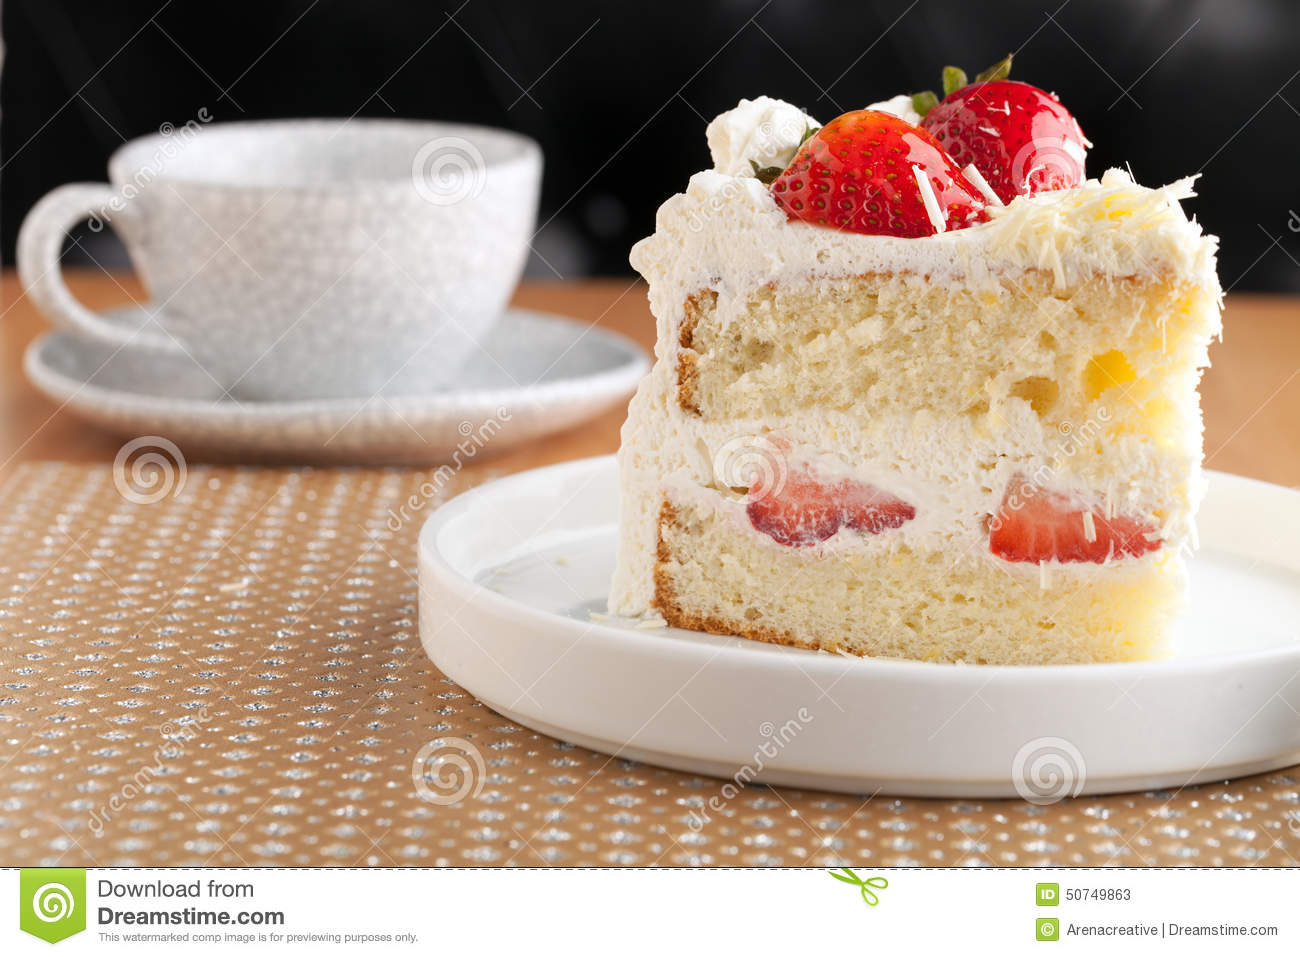 Strawberry And White Chocolate Sponge Cake Recipe